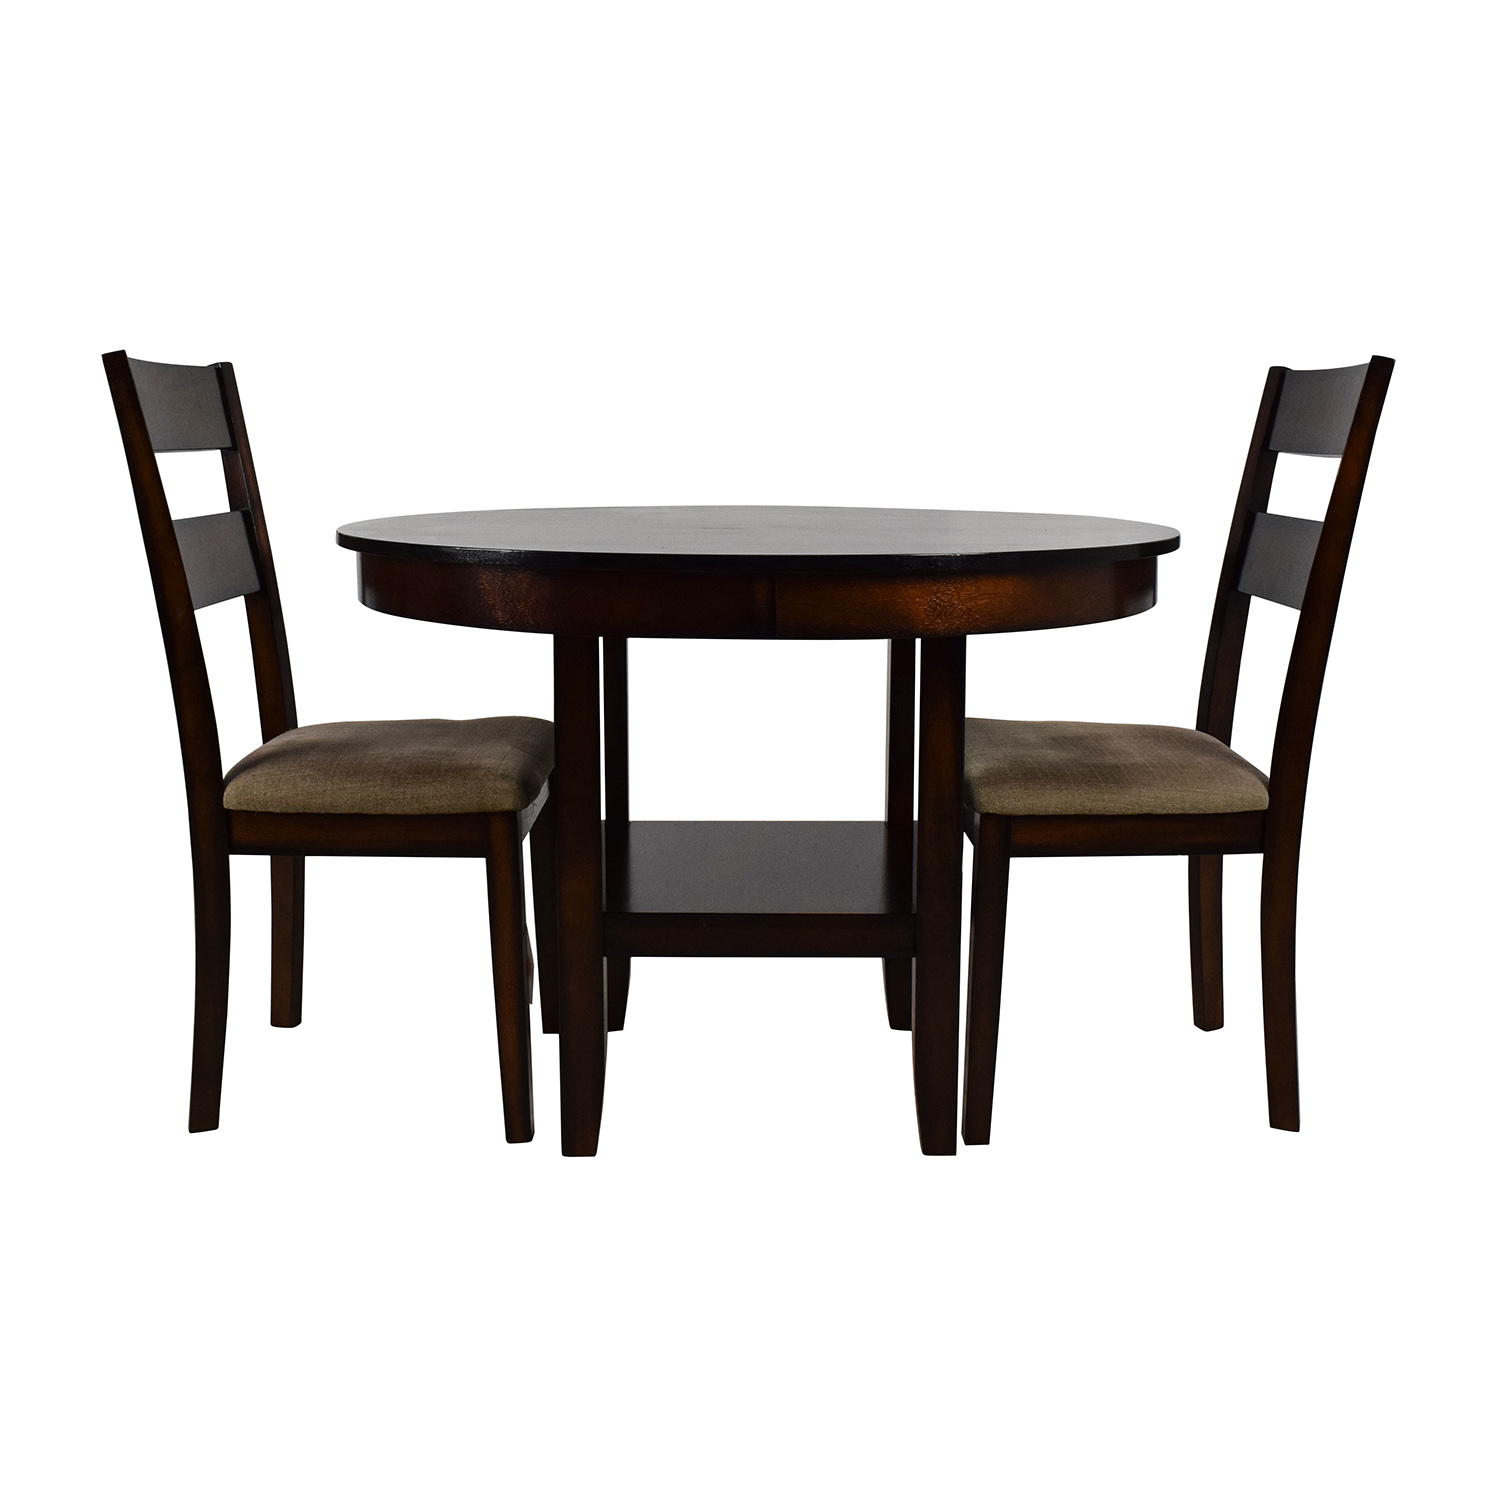 85 OFF Macys Macys Branton 3Piece Dining Room Collection